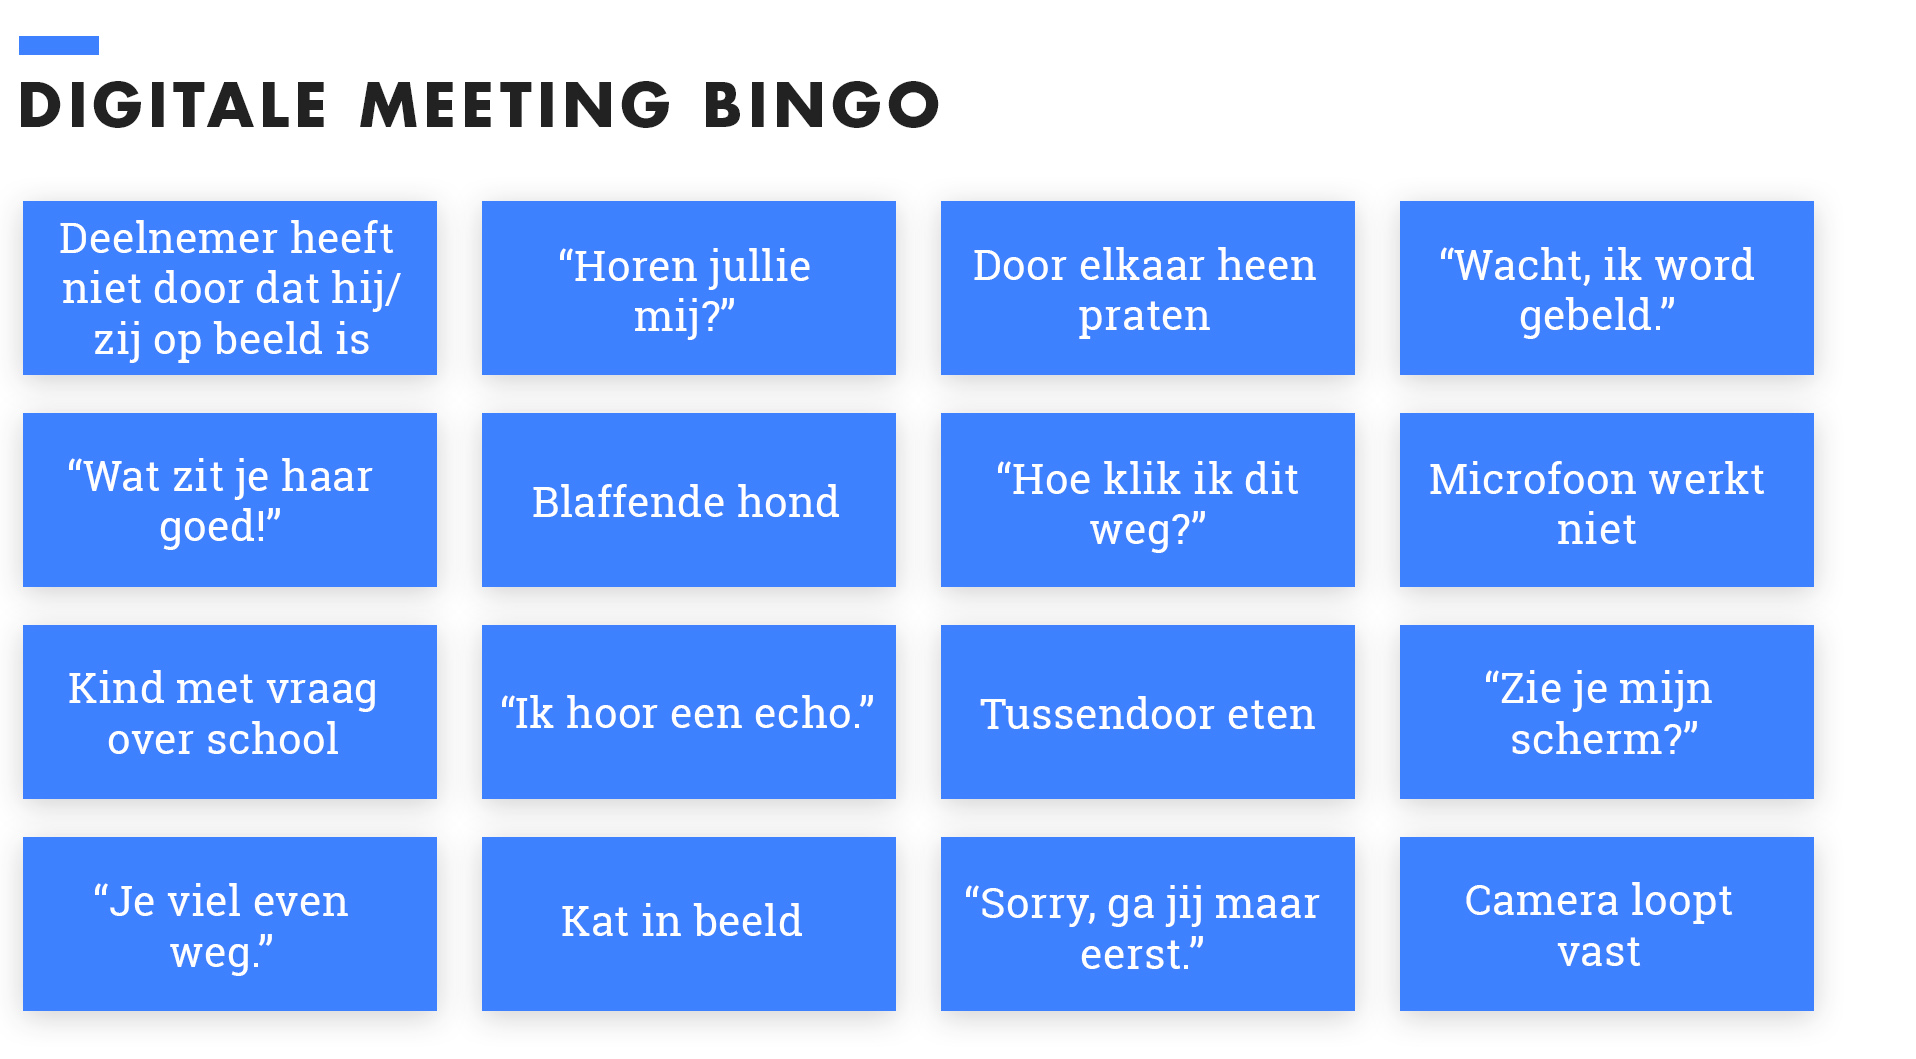 Digitale meeting bingo